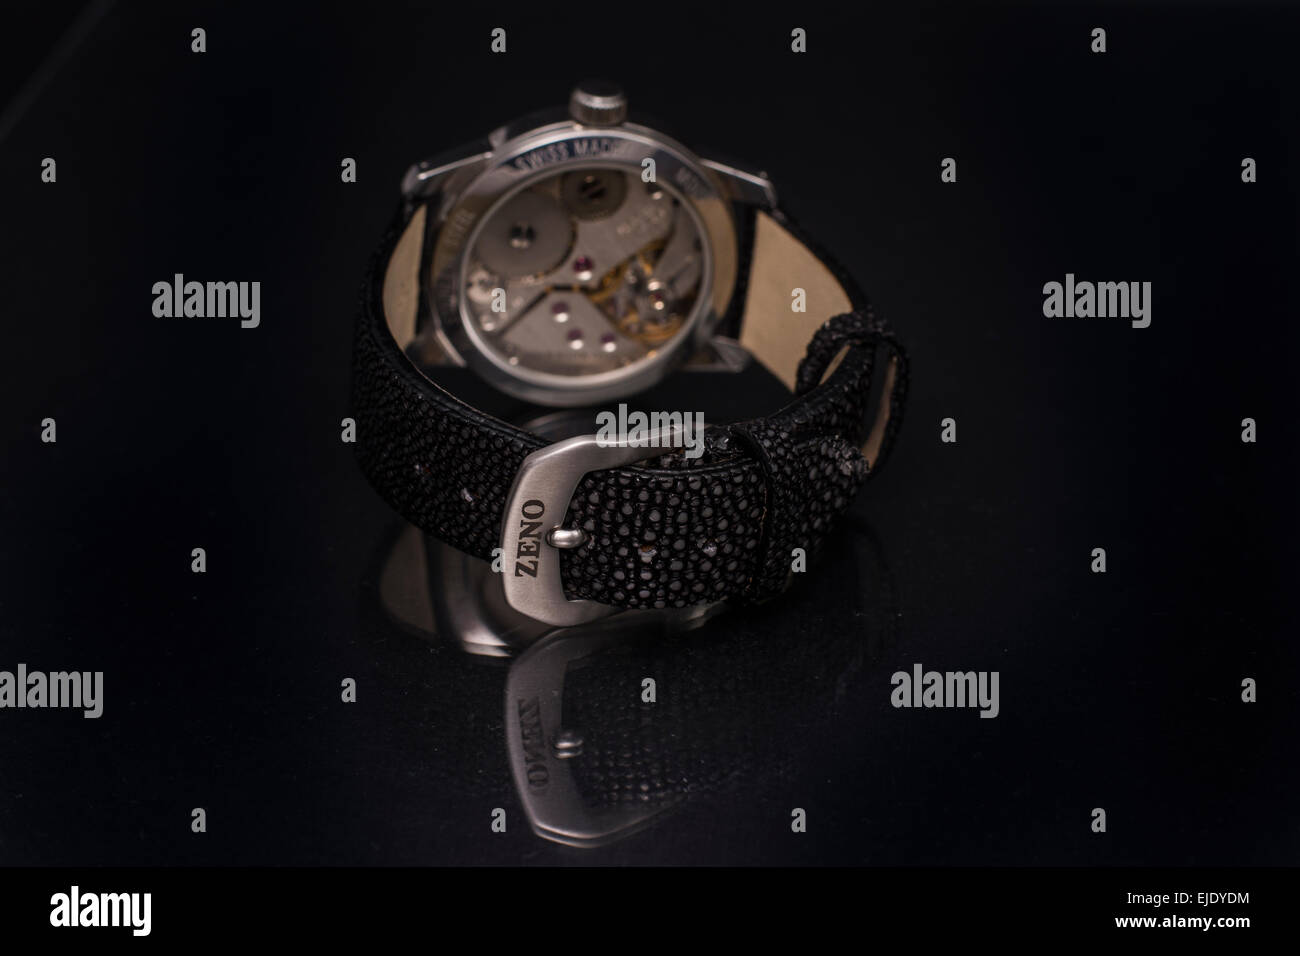 Photo shooting of elegant and luxury male wristwatches on dark background: Zeno Unitas wristwatch - Stock Image